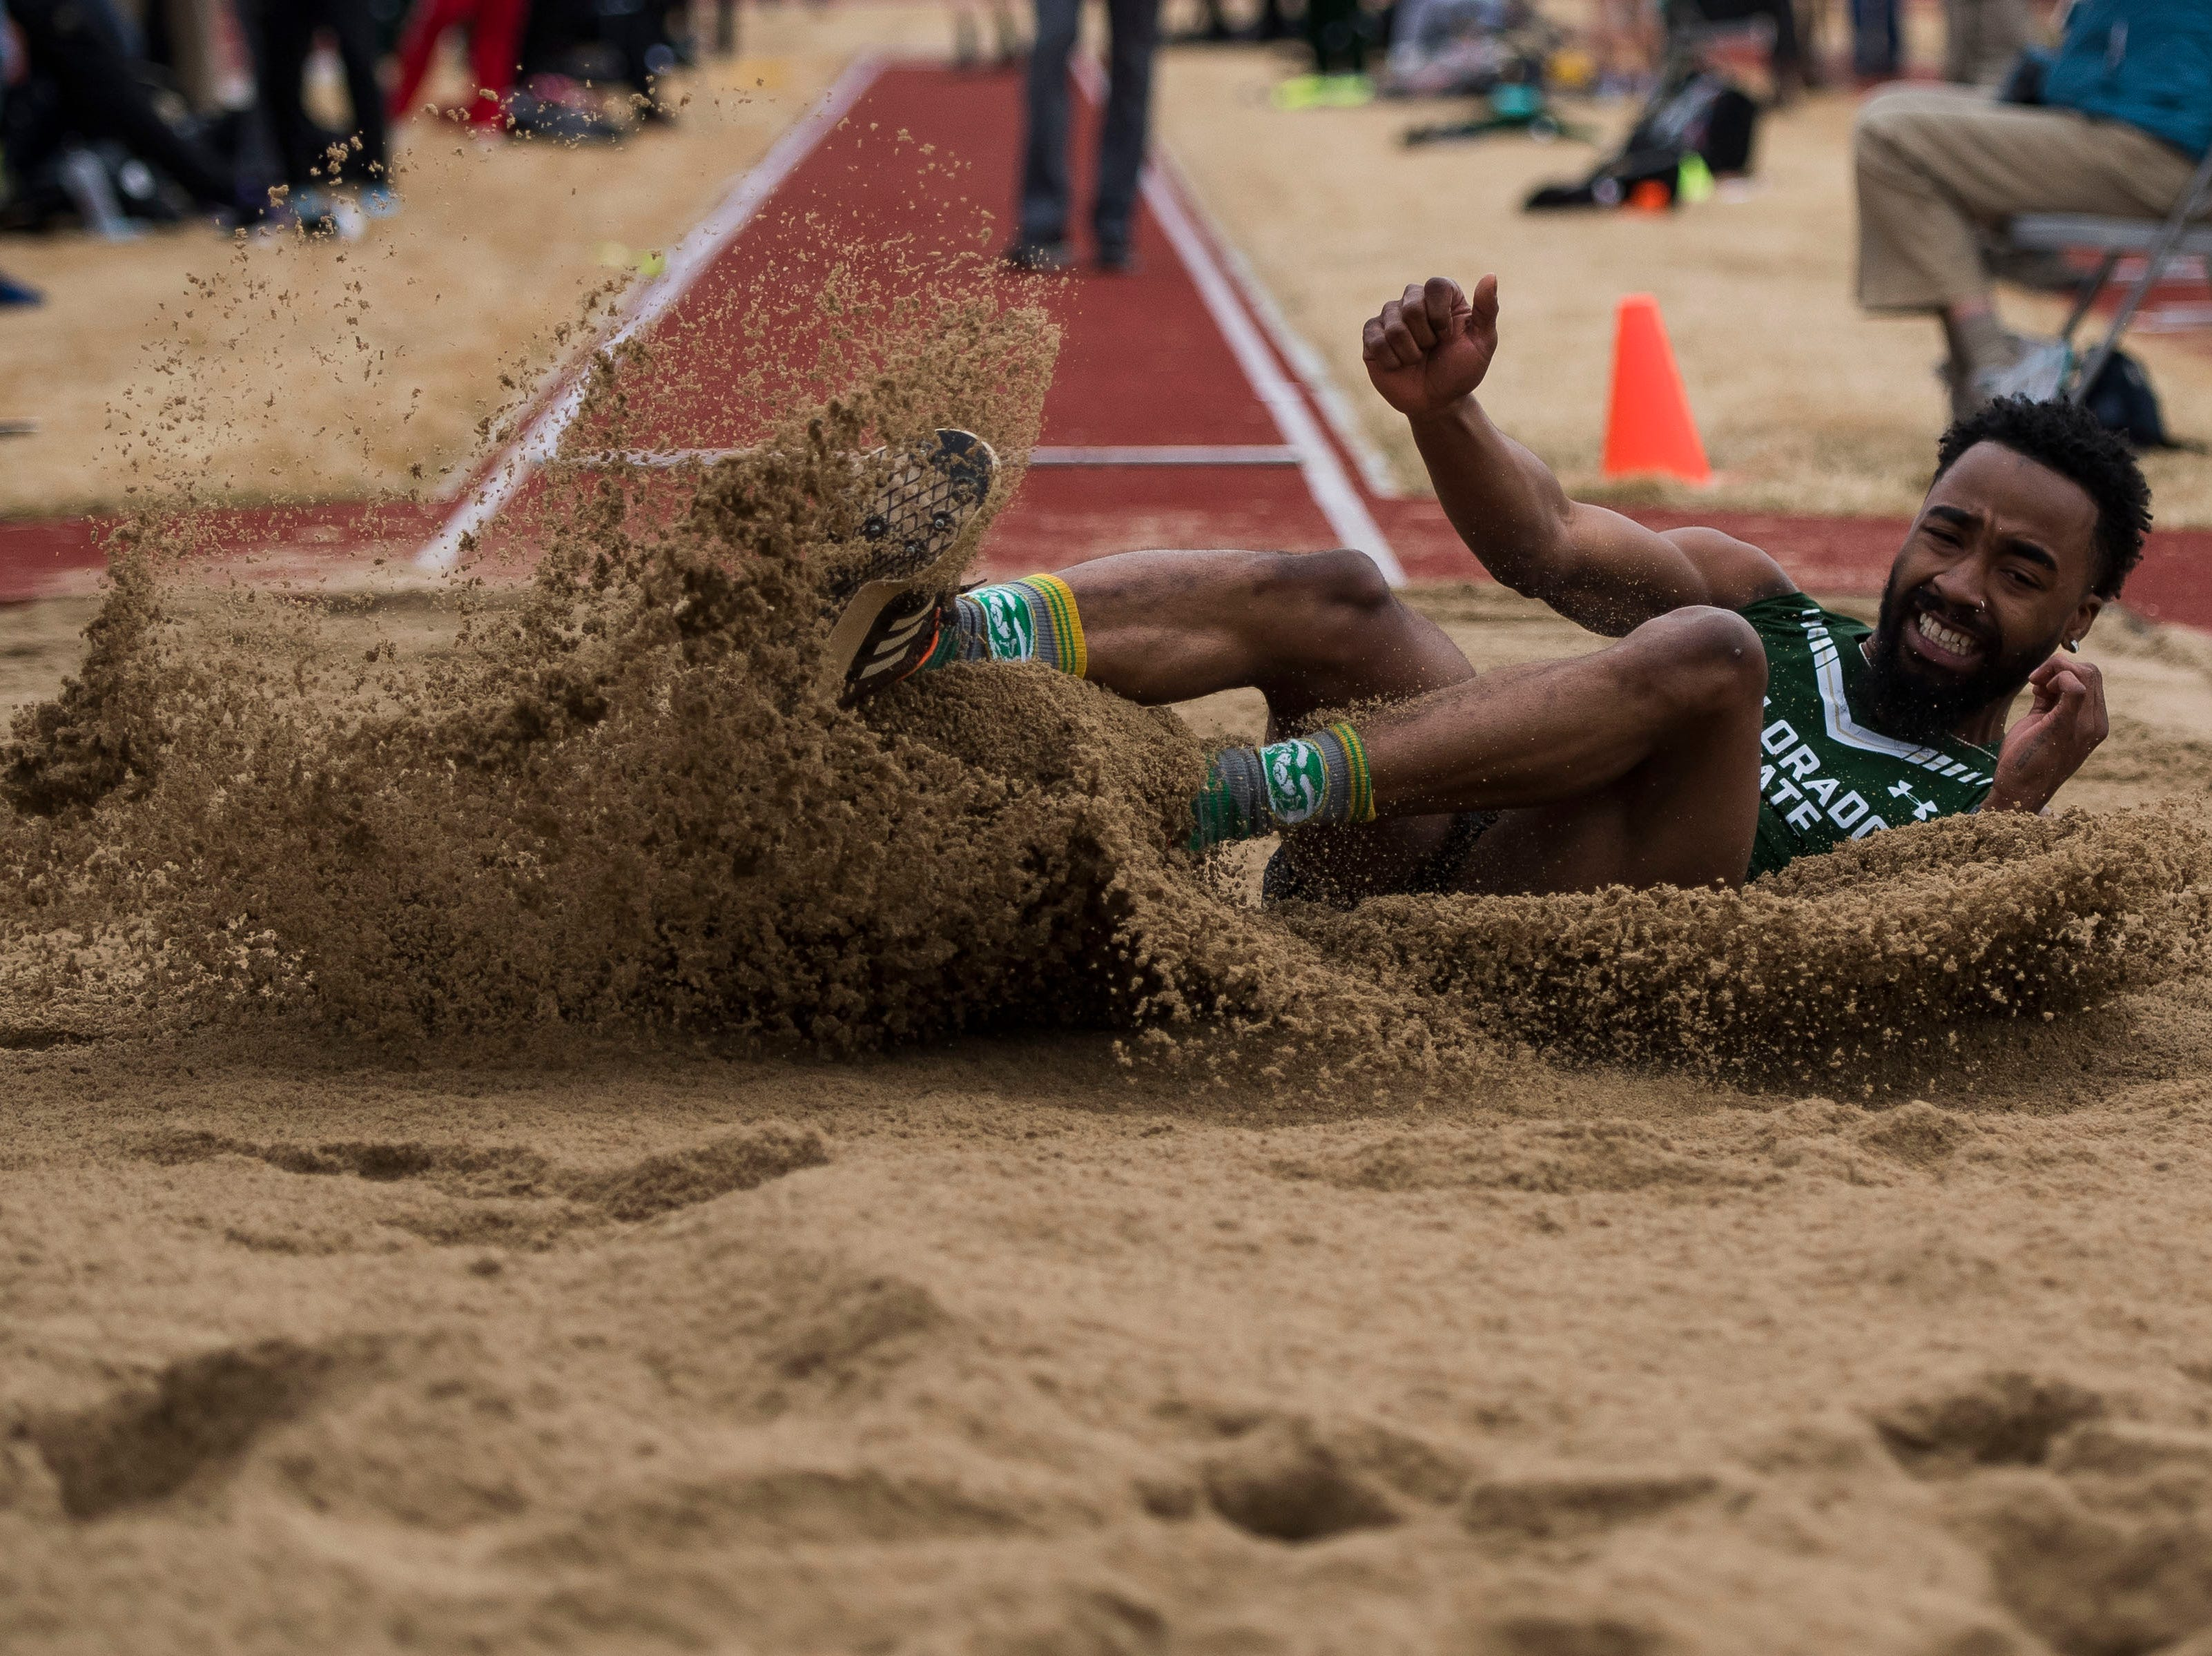 Colorado State University sophomore Isa Bynum competes in the long jump on Saturday, March 23, 2019, at the Jack Christiansen Memorial Track in Fort Collins, Colo.